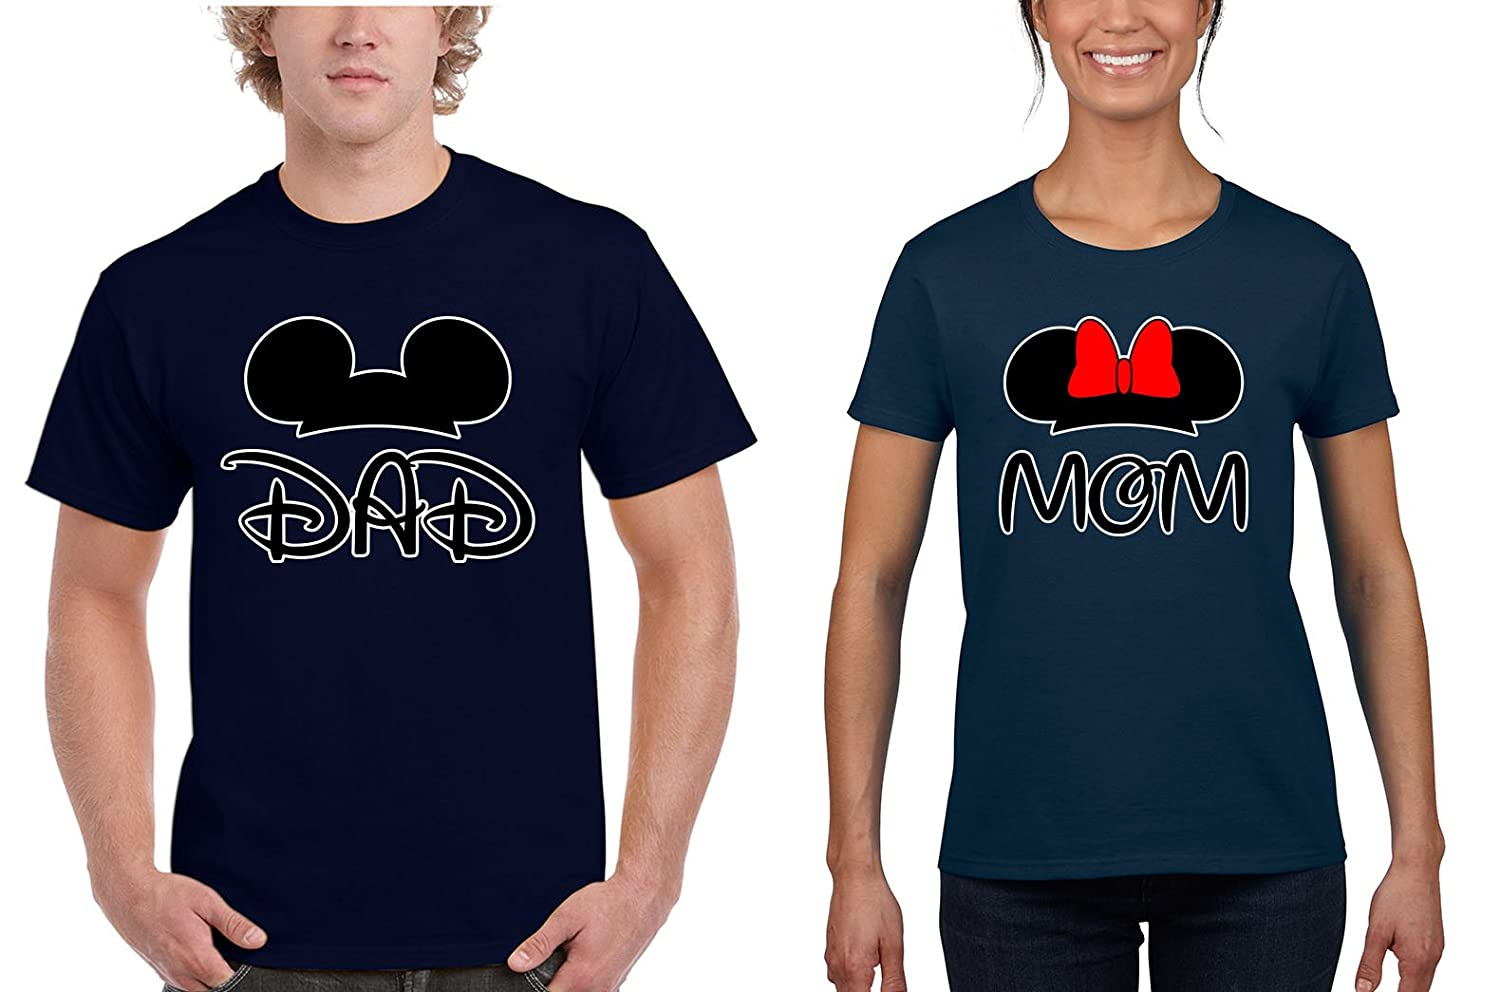 d5668fbb5 Good Shoppers Mickey Dad/Minnie Mom Couples Matching T-Shirts | Amazon.com